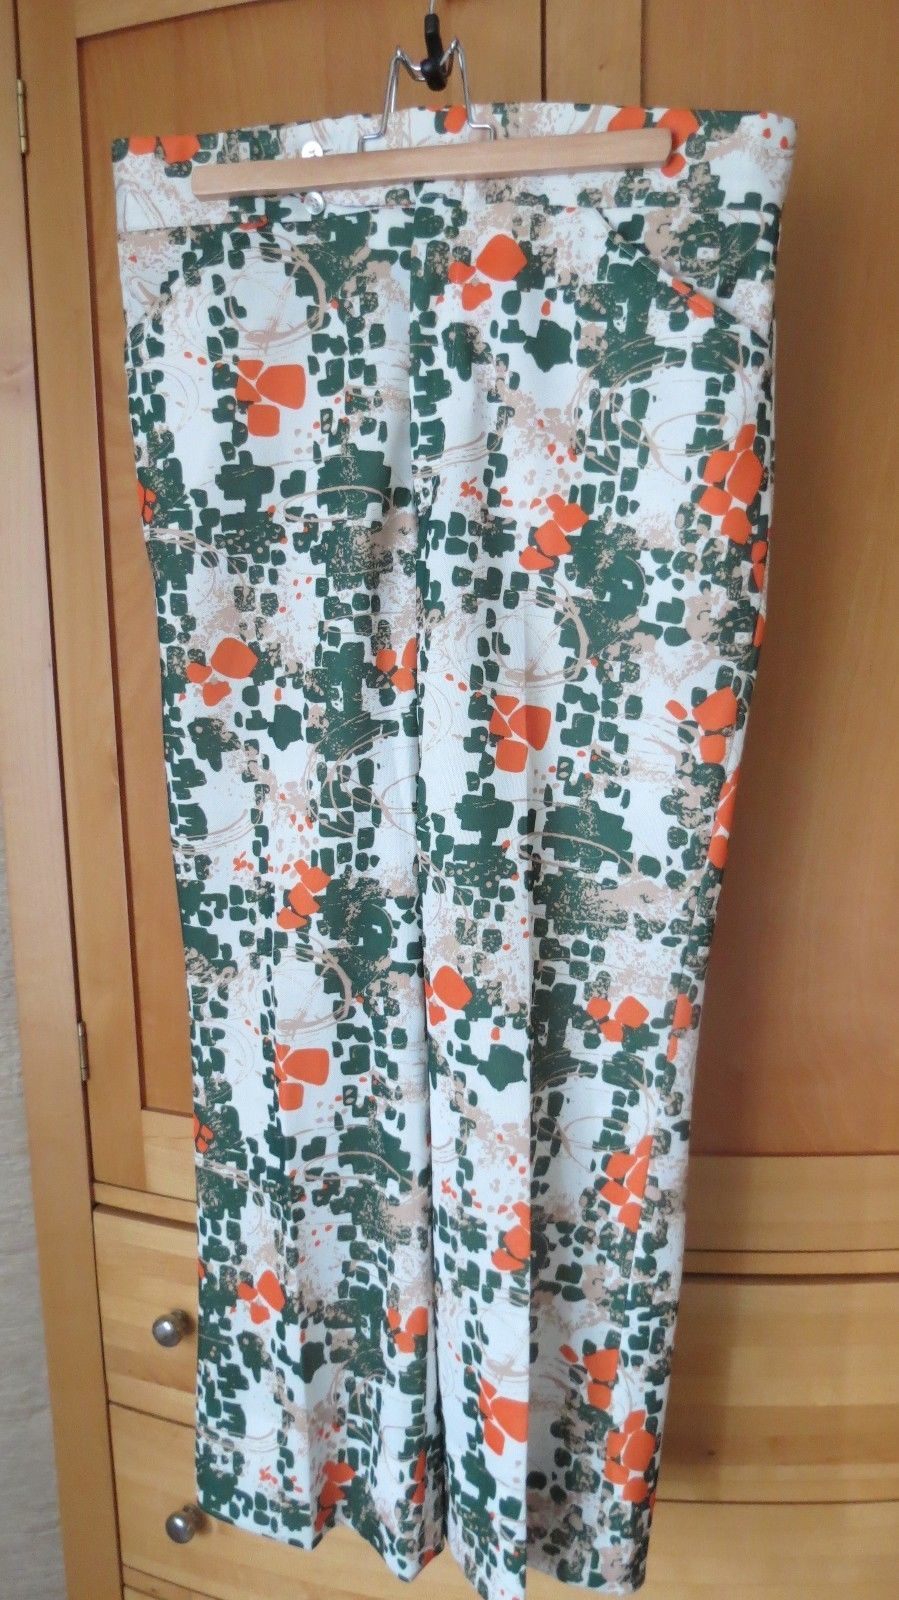 VINTAGE 70'S MEN'S POLYESTER DOUBLE KNIT MOD DISCO PANTS SLACKS SZ 34